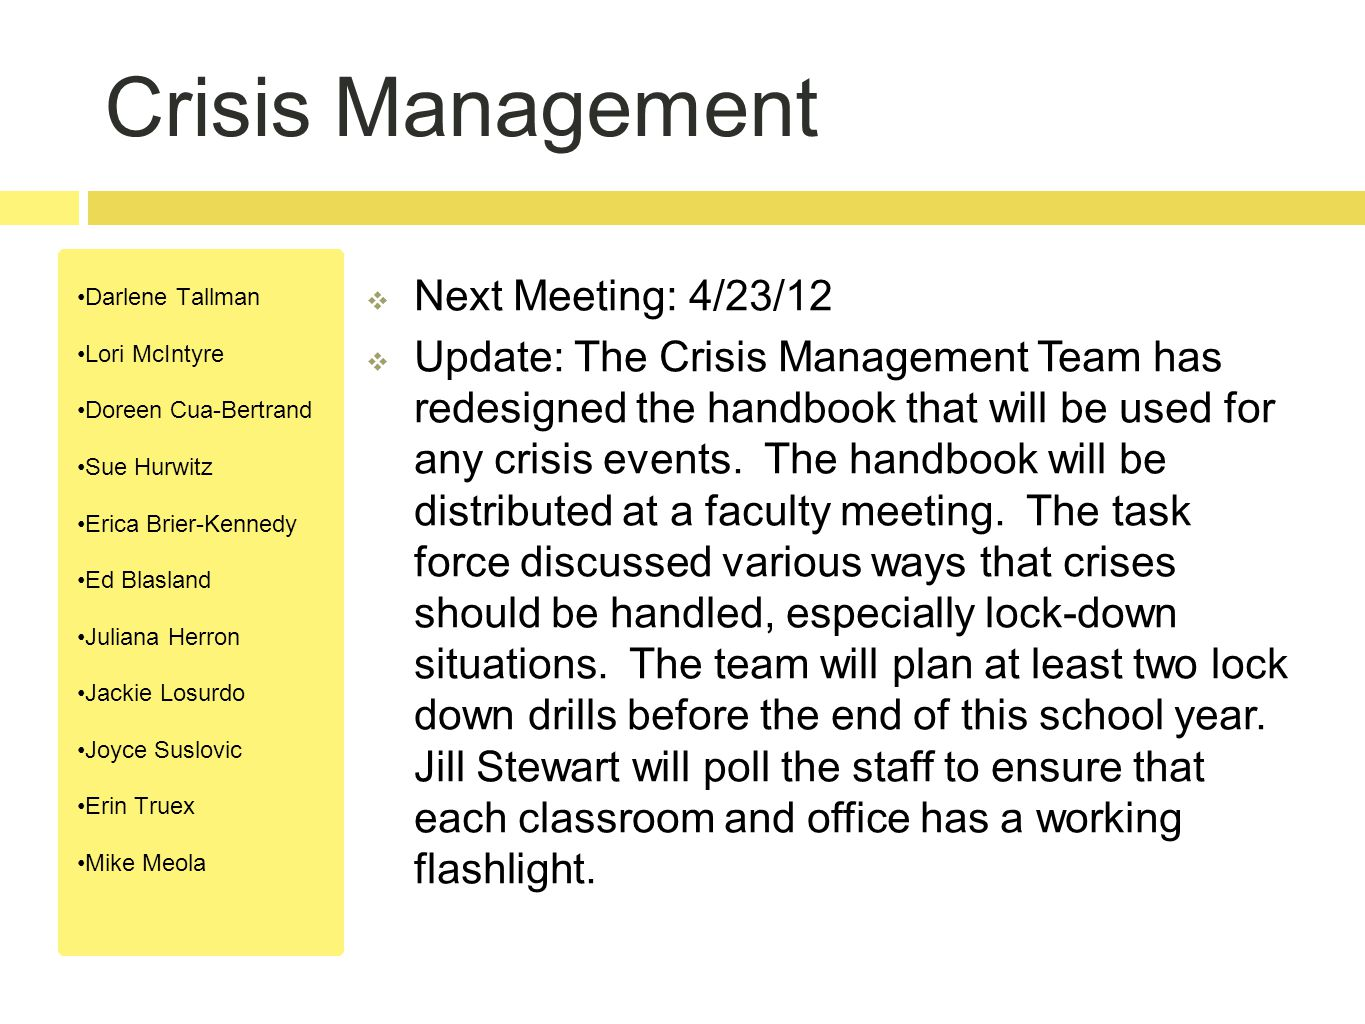 Crisis Management Darlene Tallman Lori McIntyre Doreen Cua-Bertrand Sue Hurwitz Erica Brier-Kennedy Ed Blasland Juliana Herron Jackie Losurdo Joyce Suslovic Erin Truex Mike Meola  Next Meeting: 4/23/12  Update: The Crisis Management Team has redesigned the handbook that will be used for any crisis events.